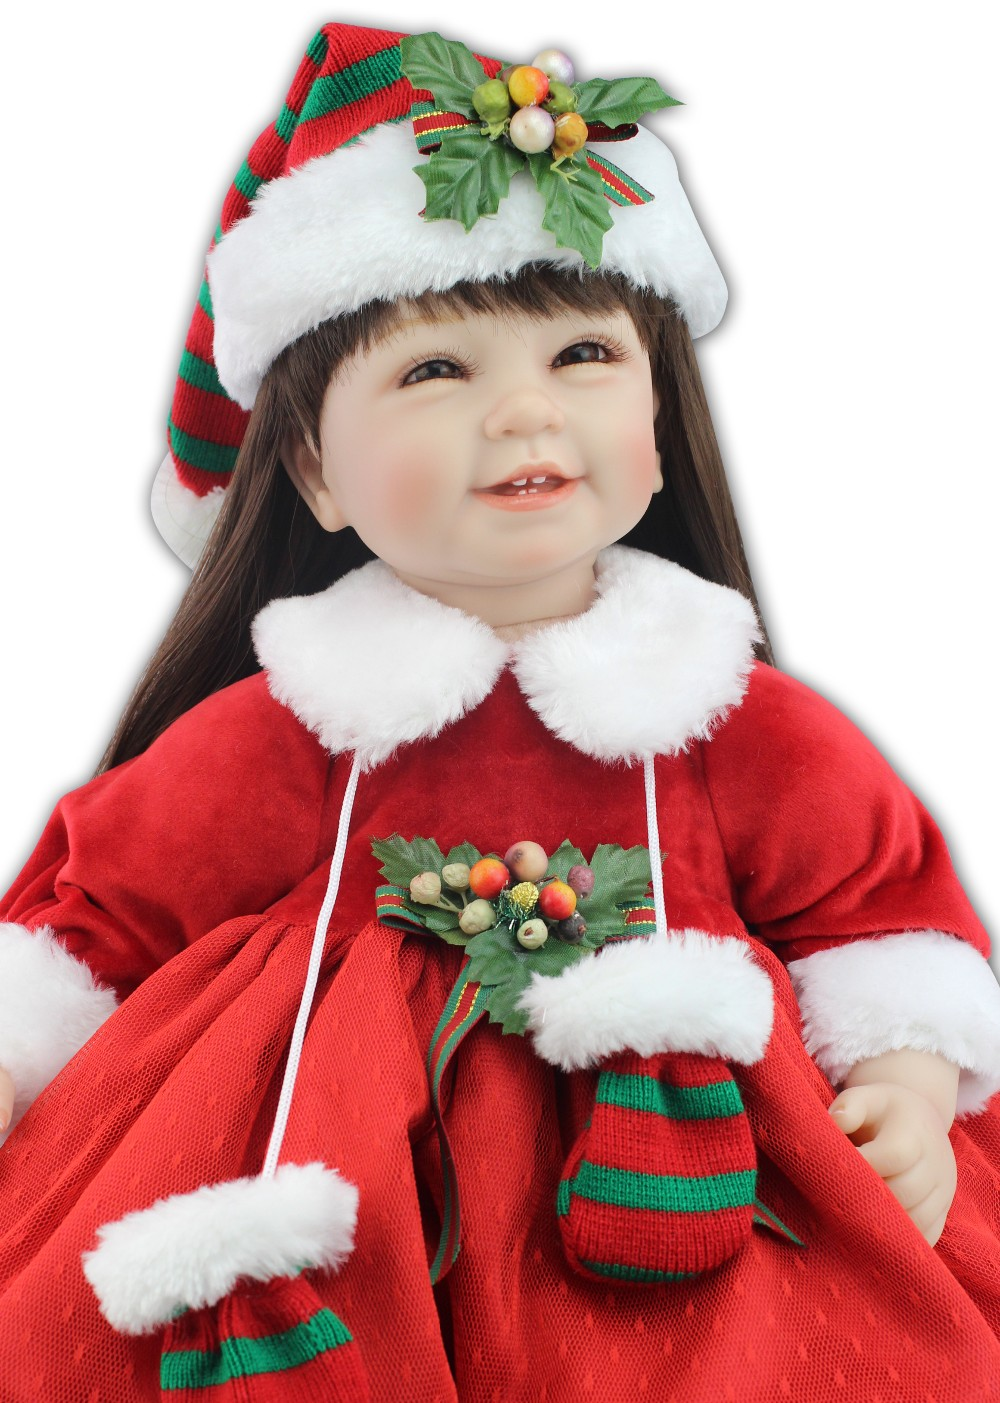 doll alive 2018 NEW design hot sale lifelike reborn todder girl doll wholesale baby dolls fashion doll Christmas gift цена